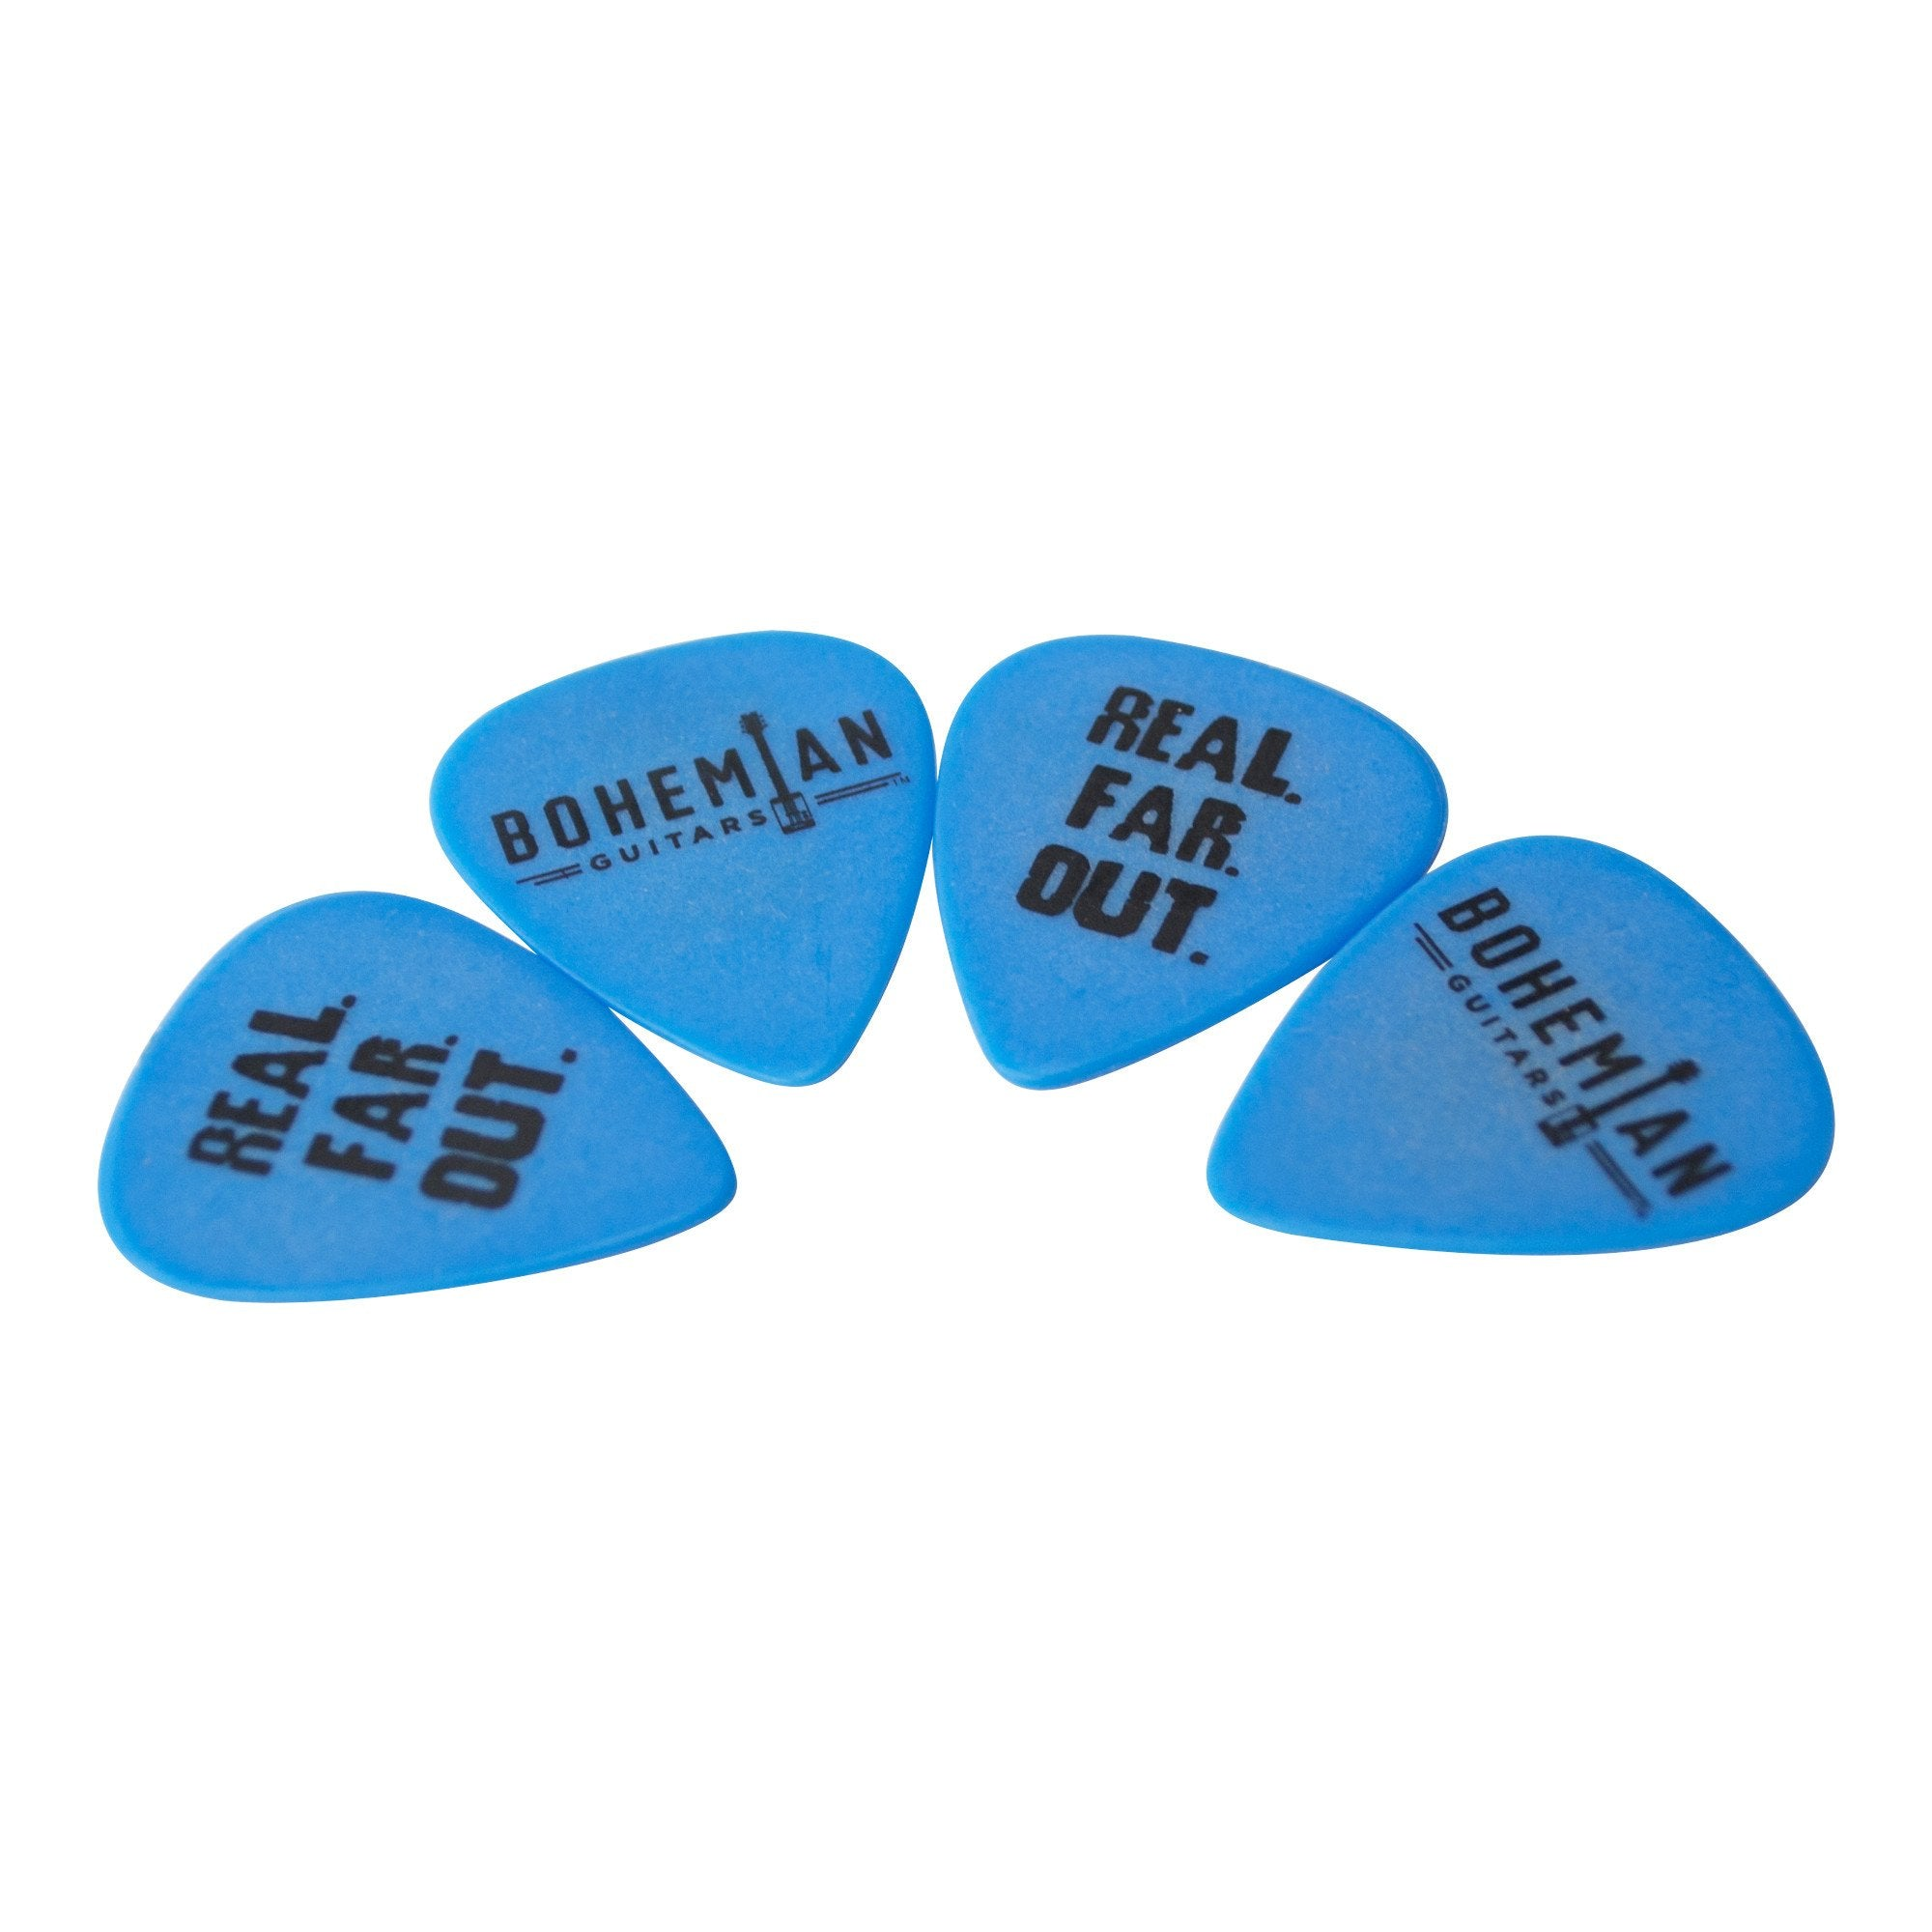 Accessory - Bohemian Guitars - Guitar Picks